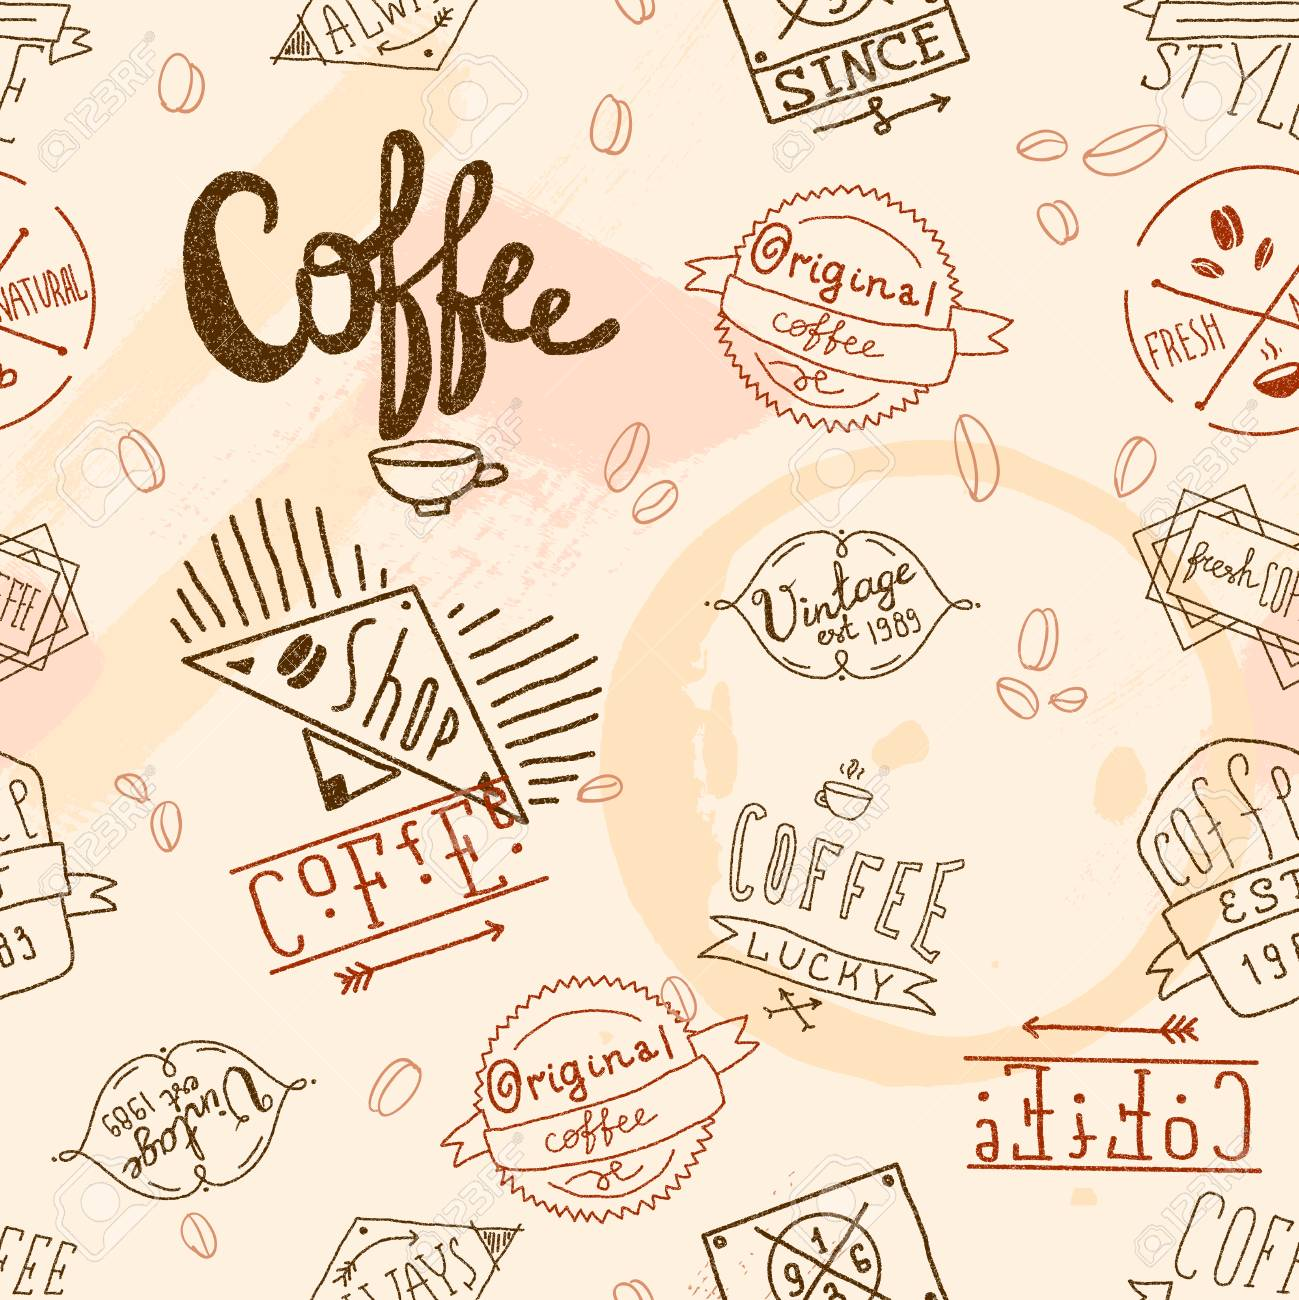 Vintage Retro Coffee Stamp Seamless Pattern For Cafe Restaurant Royalty Free Cliparts Vectors And Stock Illustration Image 30352400